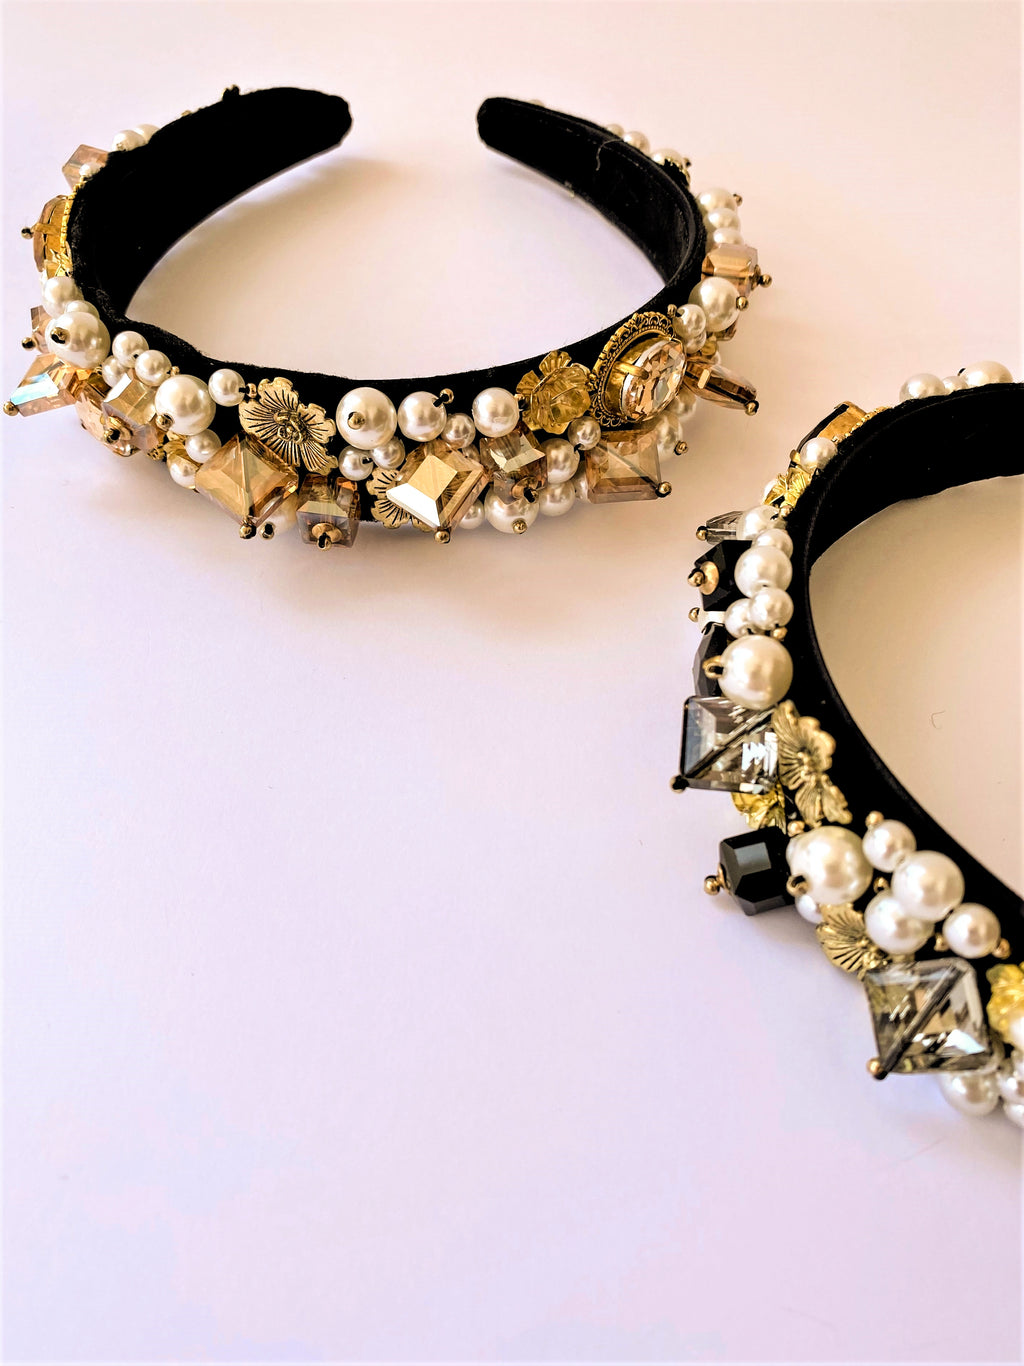 THE OTT PEARL AND STONE ENCRUSTED BANDS